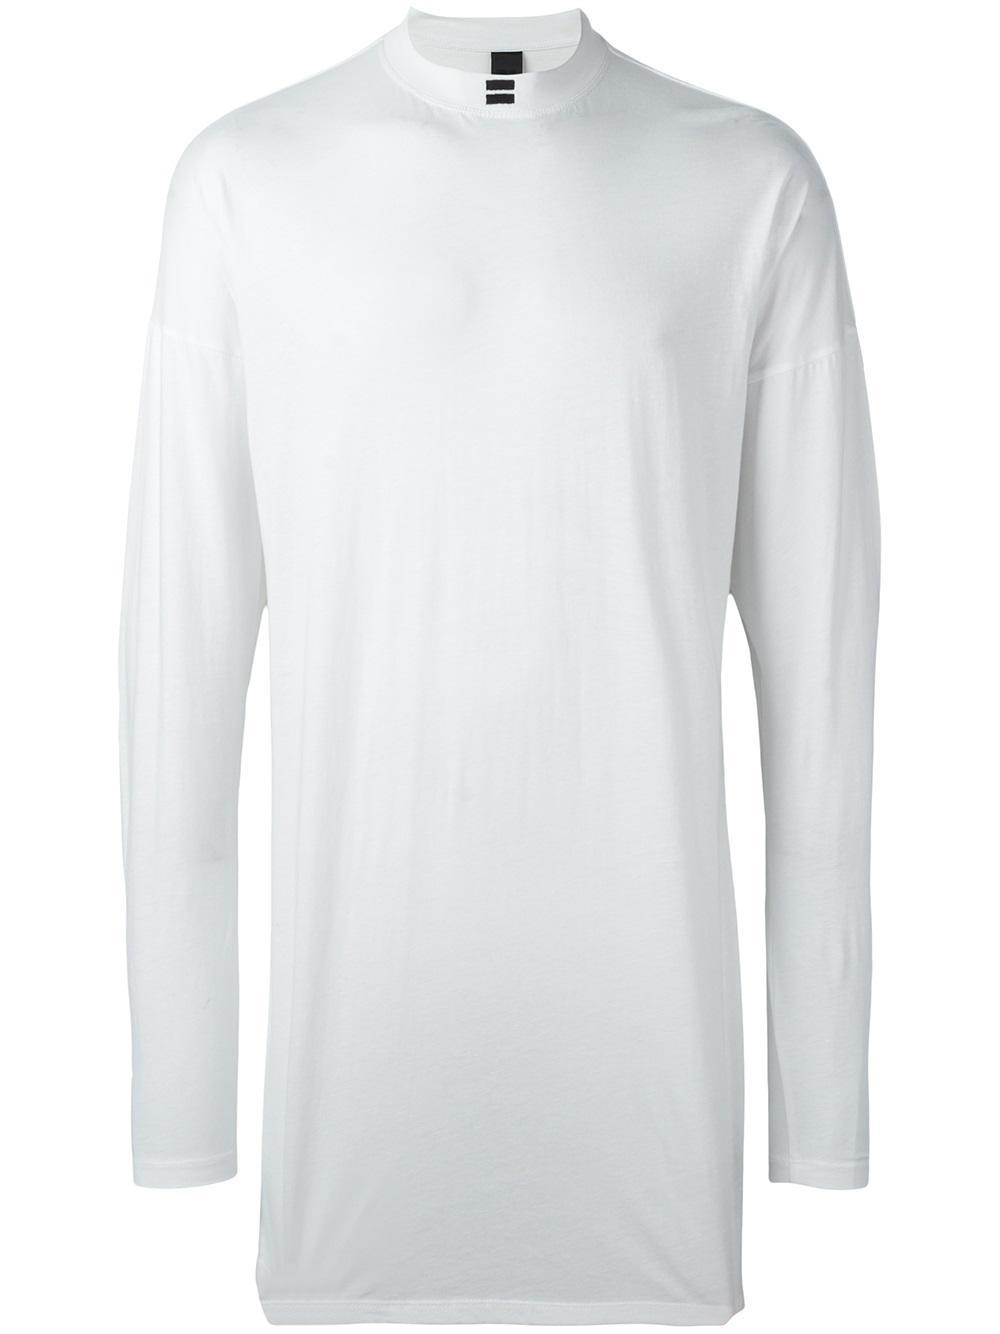 Odeur 39 Graphic 39 Long Sleeve T Shirt In White For Men Lyst